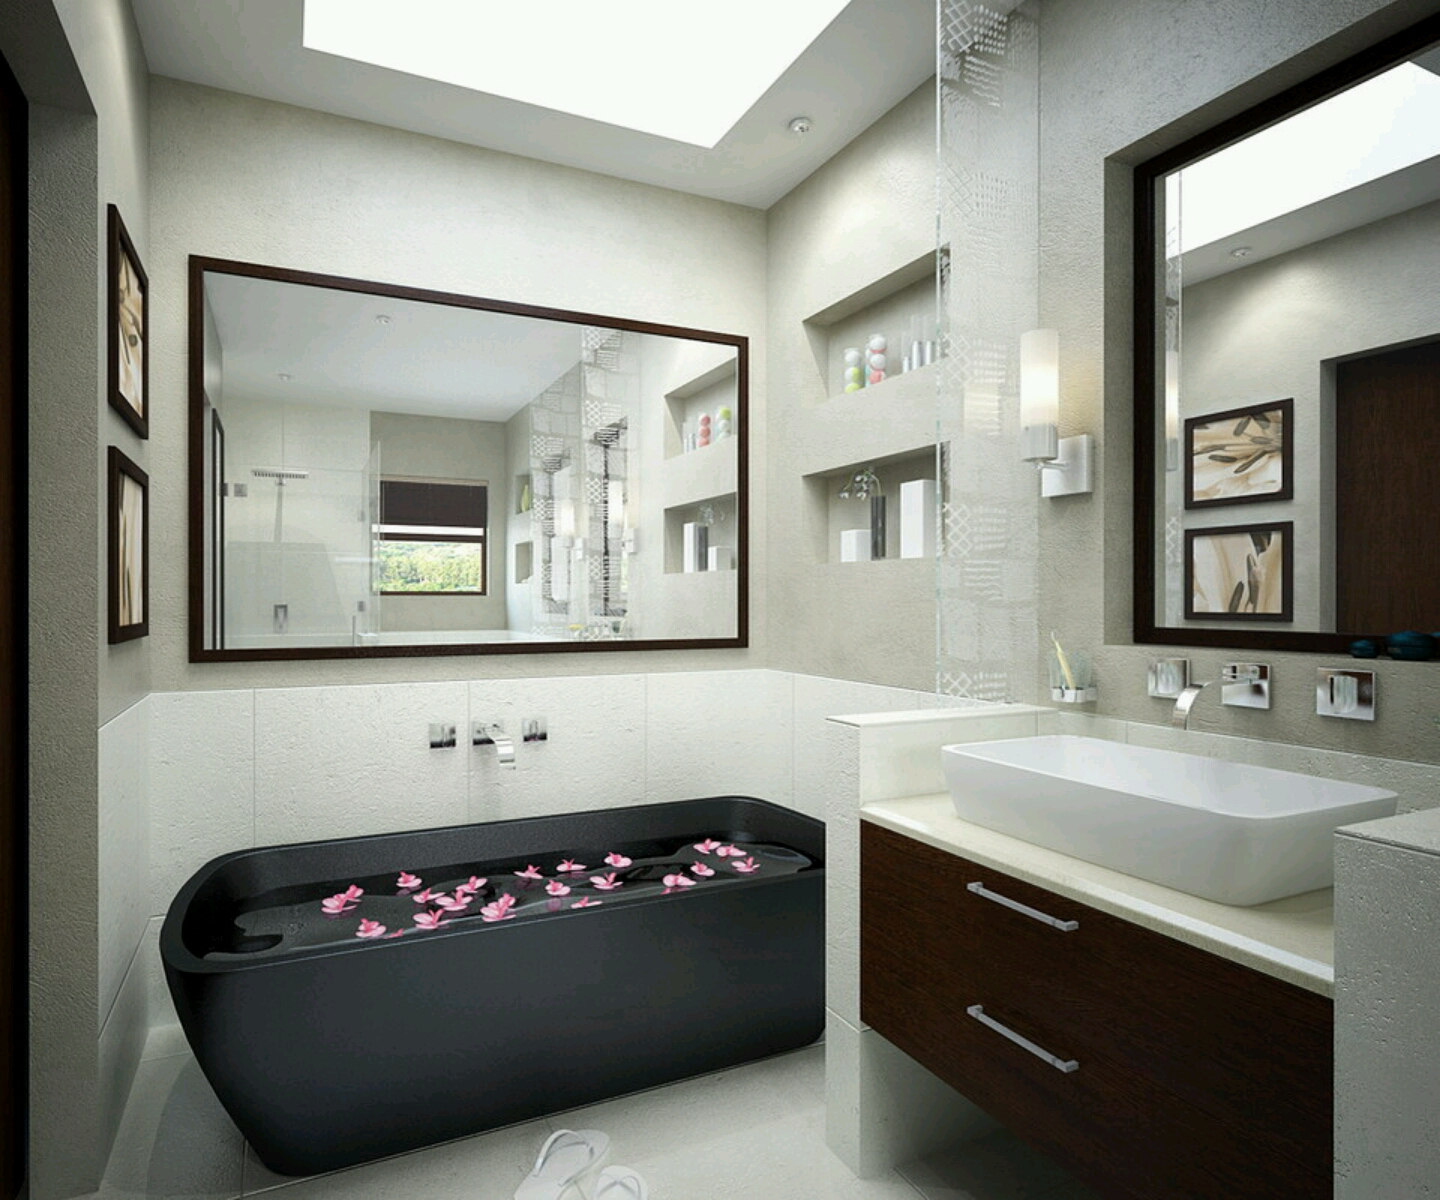 Modern bathrooms cabinets designs furniture gallery for Bathroom ideas modern